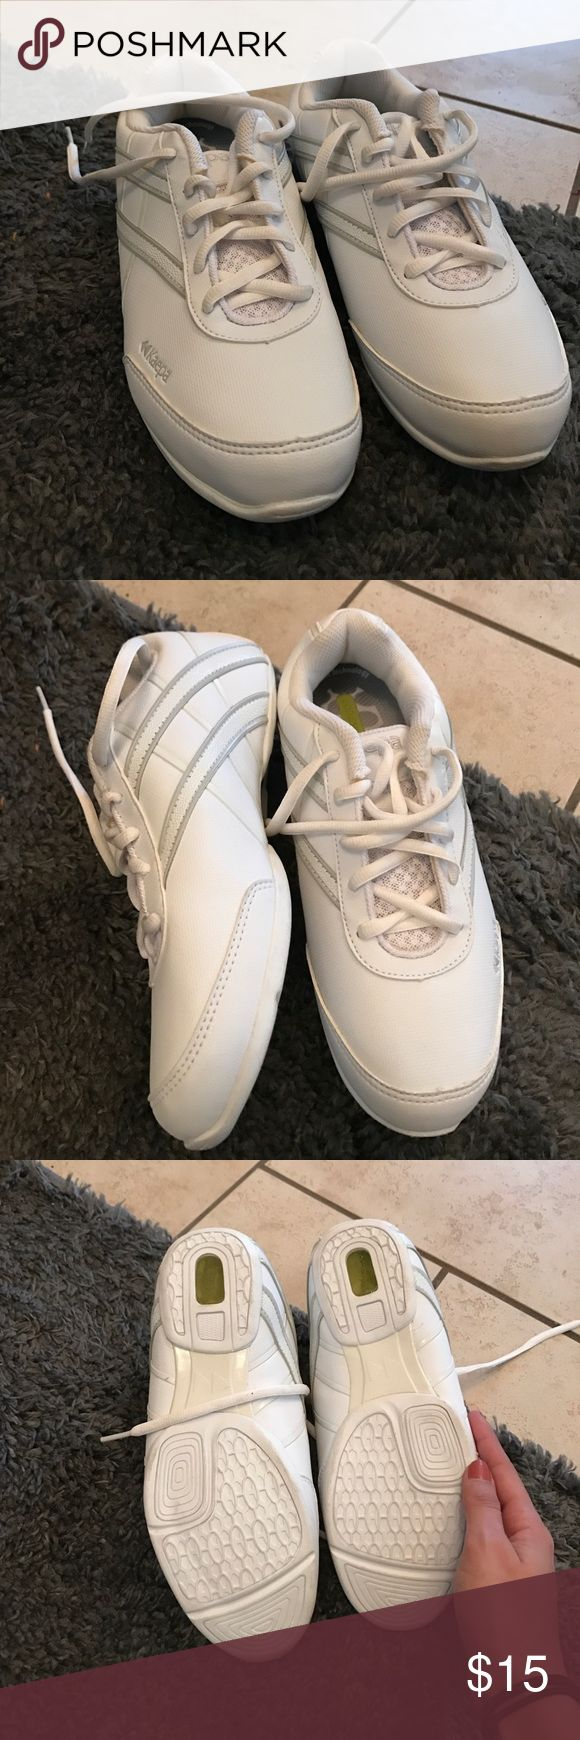 never worn cheerleading shoes!!! These are great cheerleading shoes. Ordered two for sizing and never returned, never worn!!! Make me offers!! Not Nike just for exposure Nike Shoes Sneakers